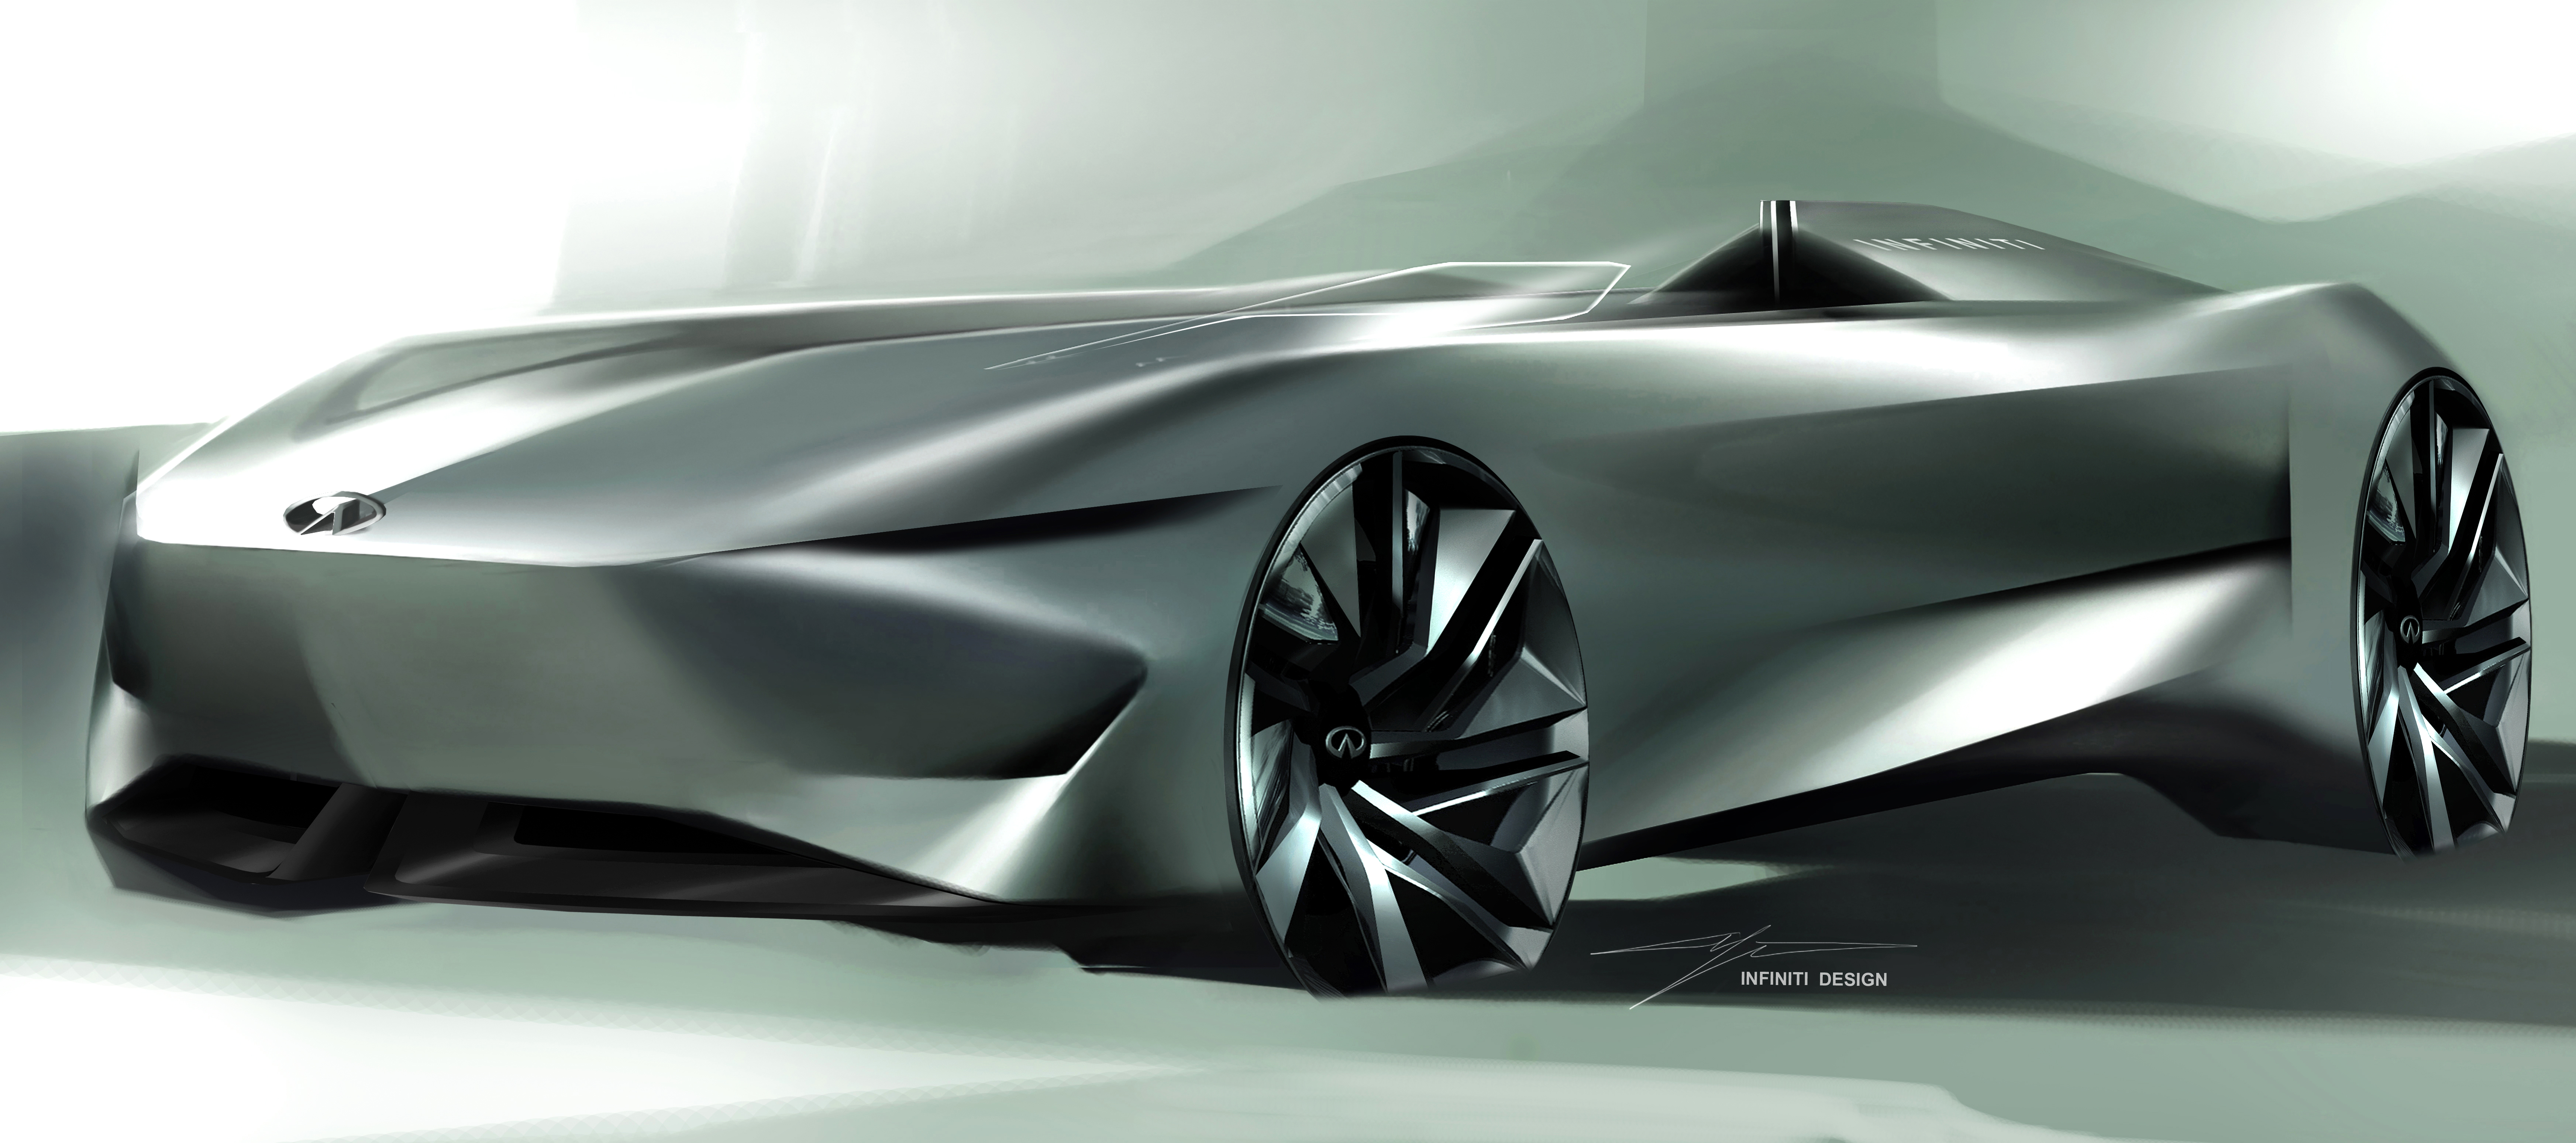 Infiniti S Single Seater Concept Teased With Sleek Lines